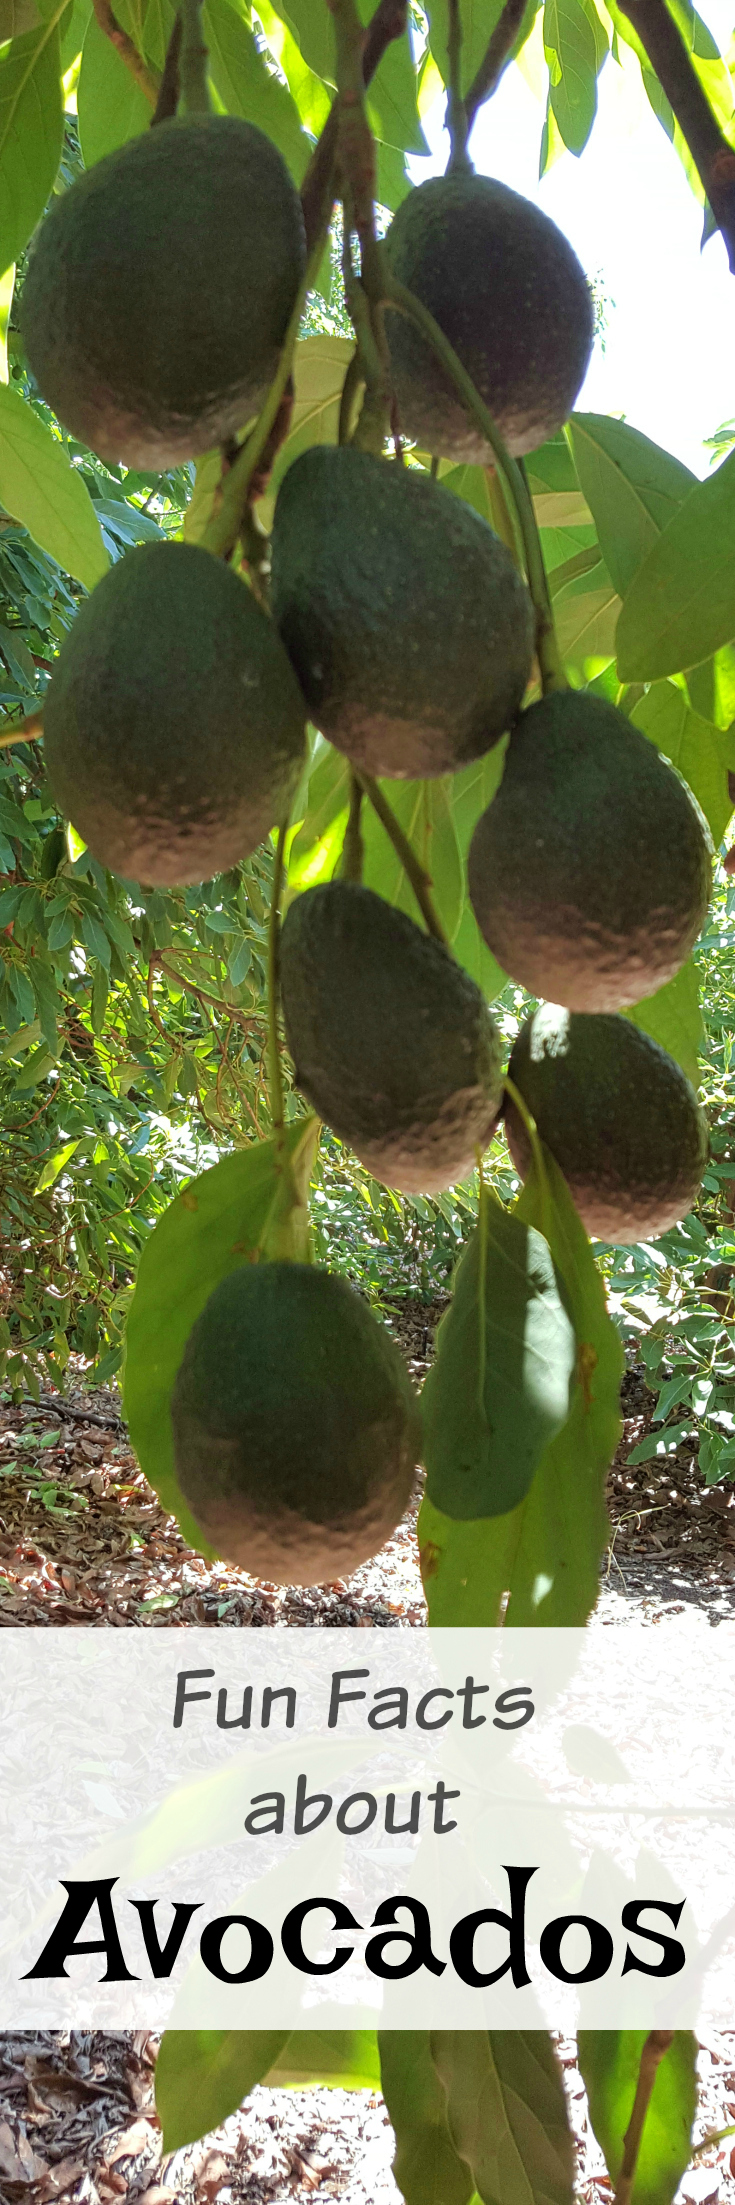 Fun and Interesting Facts About Avocados